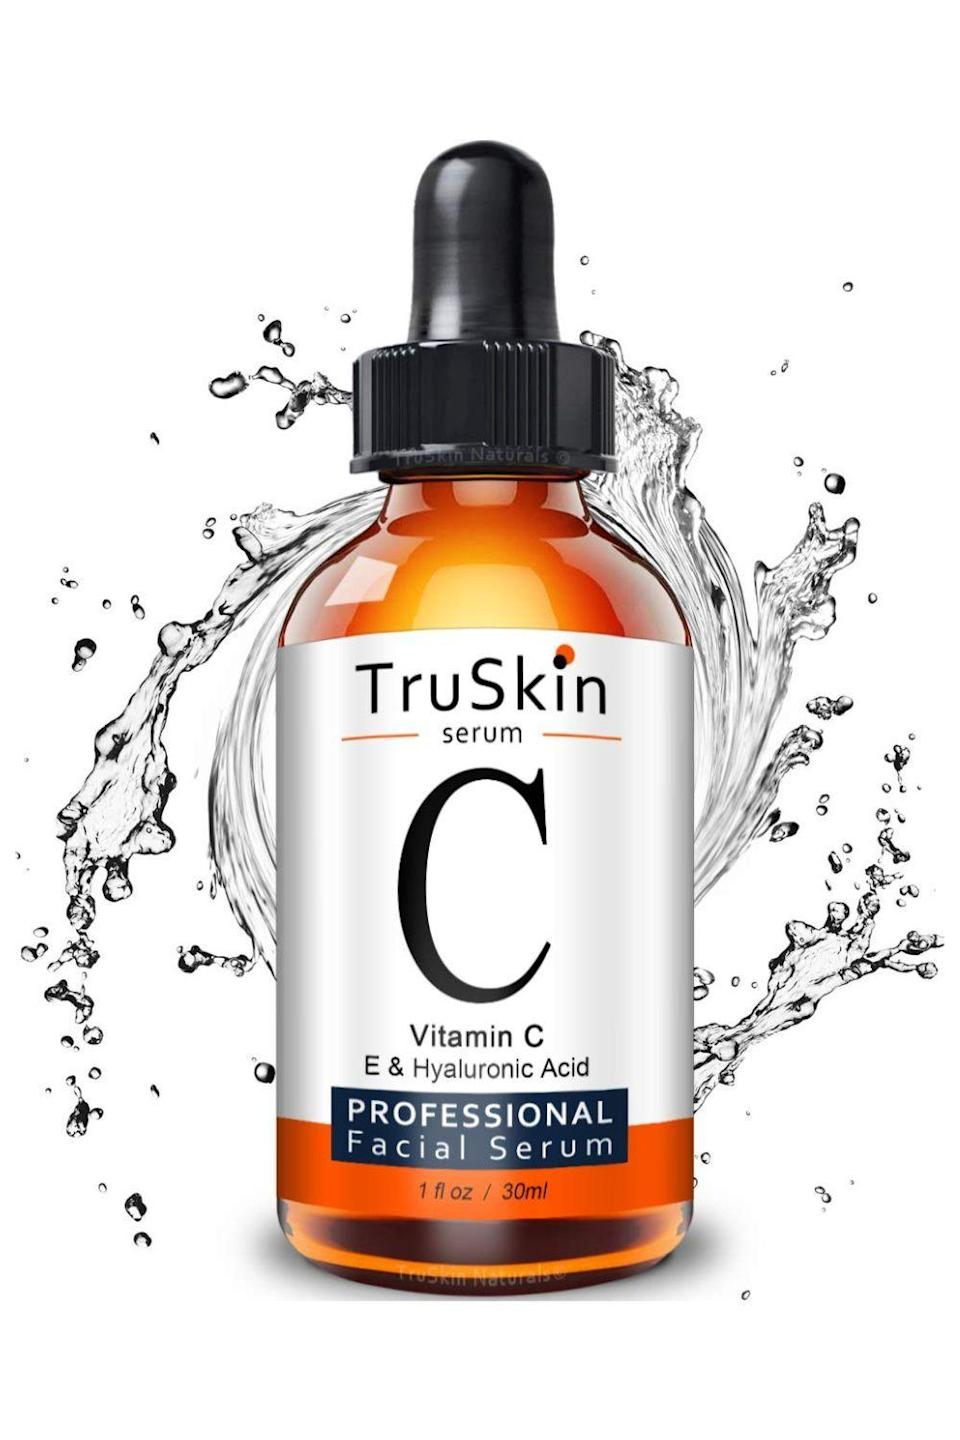 """<p><strong>TruSkin Naturals</strong></p><p>amazon.com</p><p><strong>$19.99</strong></p><p><a href=""""https://www.amazon.com/dp/B01M4MCUAF?tag=syn-yahoo-20&ascsubtag=%5Bartid%7C2140.g.35717314%5Bsrc%7Cyahoo-us"""" rel=""""nofollow noopener"""" target=""""_blank"""" data-ylk=""""slk:shop"""" class=""""link rapid-noclick-resp"""">shop</a></p><p>With all the antioxidant and skin-brightening benefits of a <a href=""""https://www.cosmopolitan.com/style-beauty/beauty/g12091058/best-vitamin-c-serum-face-skin/"""" rel=""""nofollow noopener"""" target=""""_blank"""" data-ylk=""""slk:vitamin C serum"""" class=""""link rapid-noclick-resp"""">vitamin C serum</a>, pretty much everyone could use one in their skincare routine. This inexpensive option, which uses the vitamin C derivative sodium ascorbyl phosphate, comes highly recommended by more than 28,000 Amazon reviewers.</p>"""